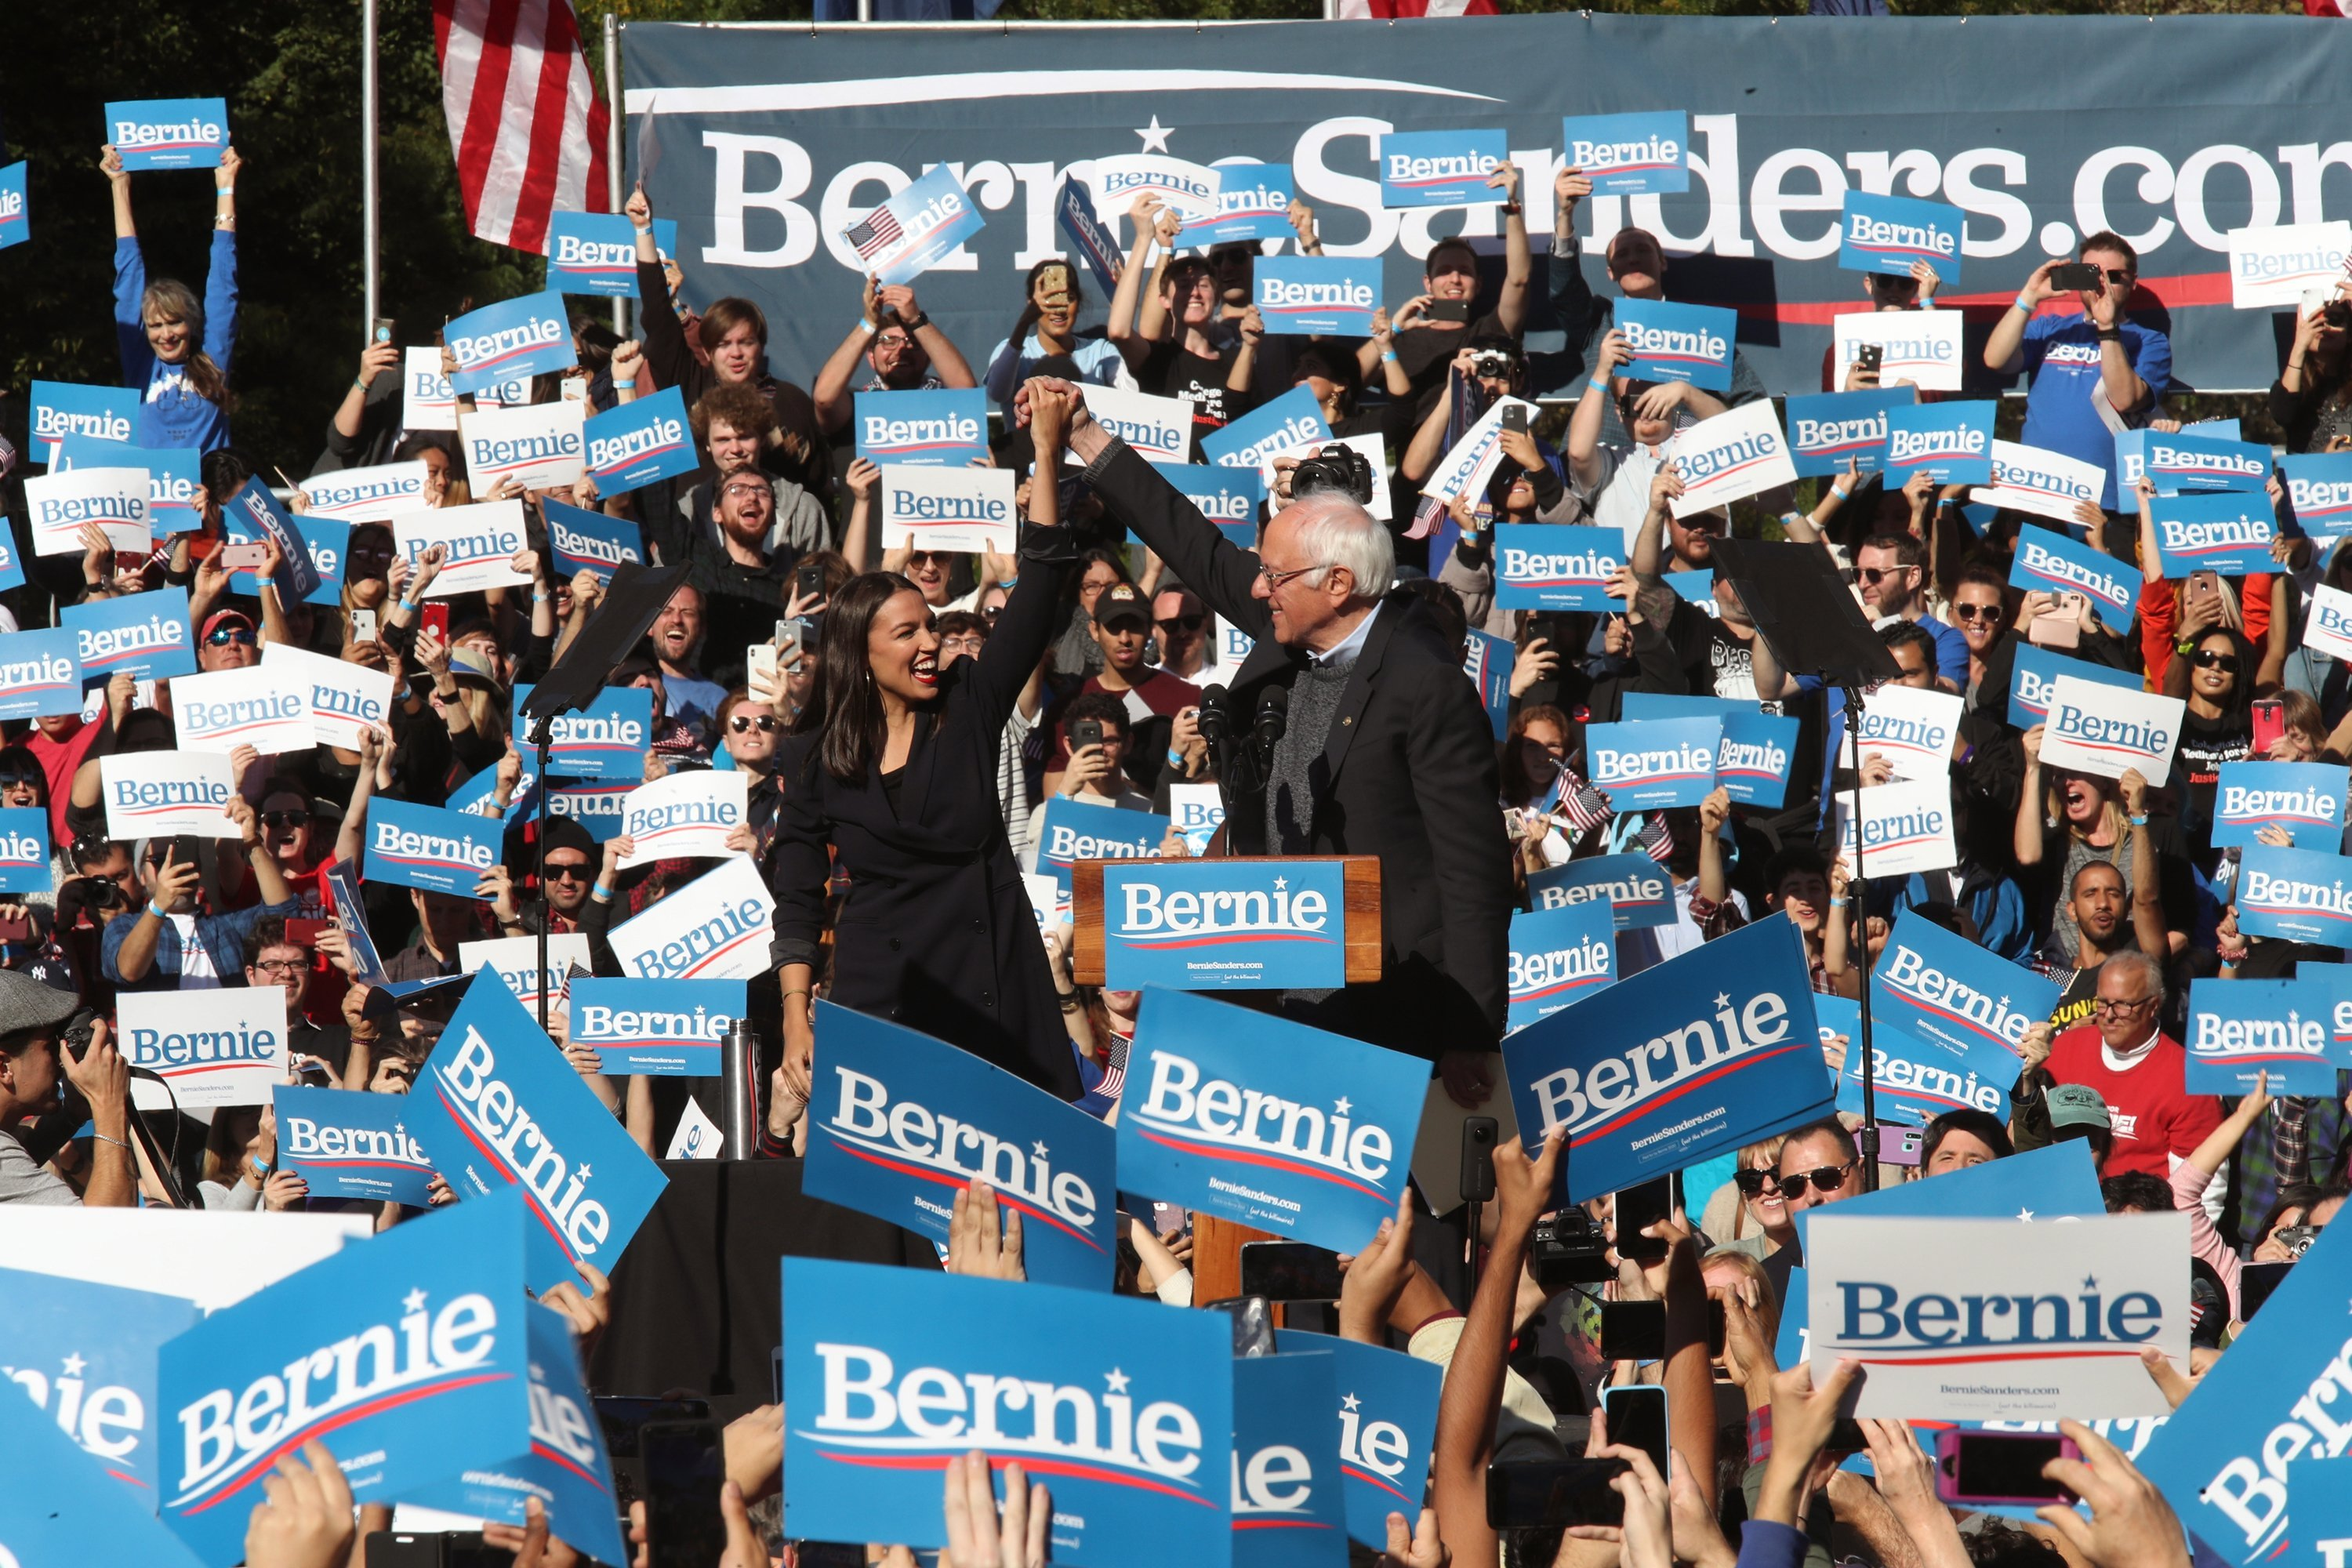 Alexandria Ocasio-Cortez endorses Bernie Sanders at his 'Bernie's Back' rally in New York